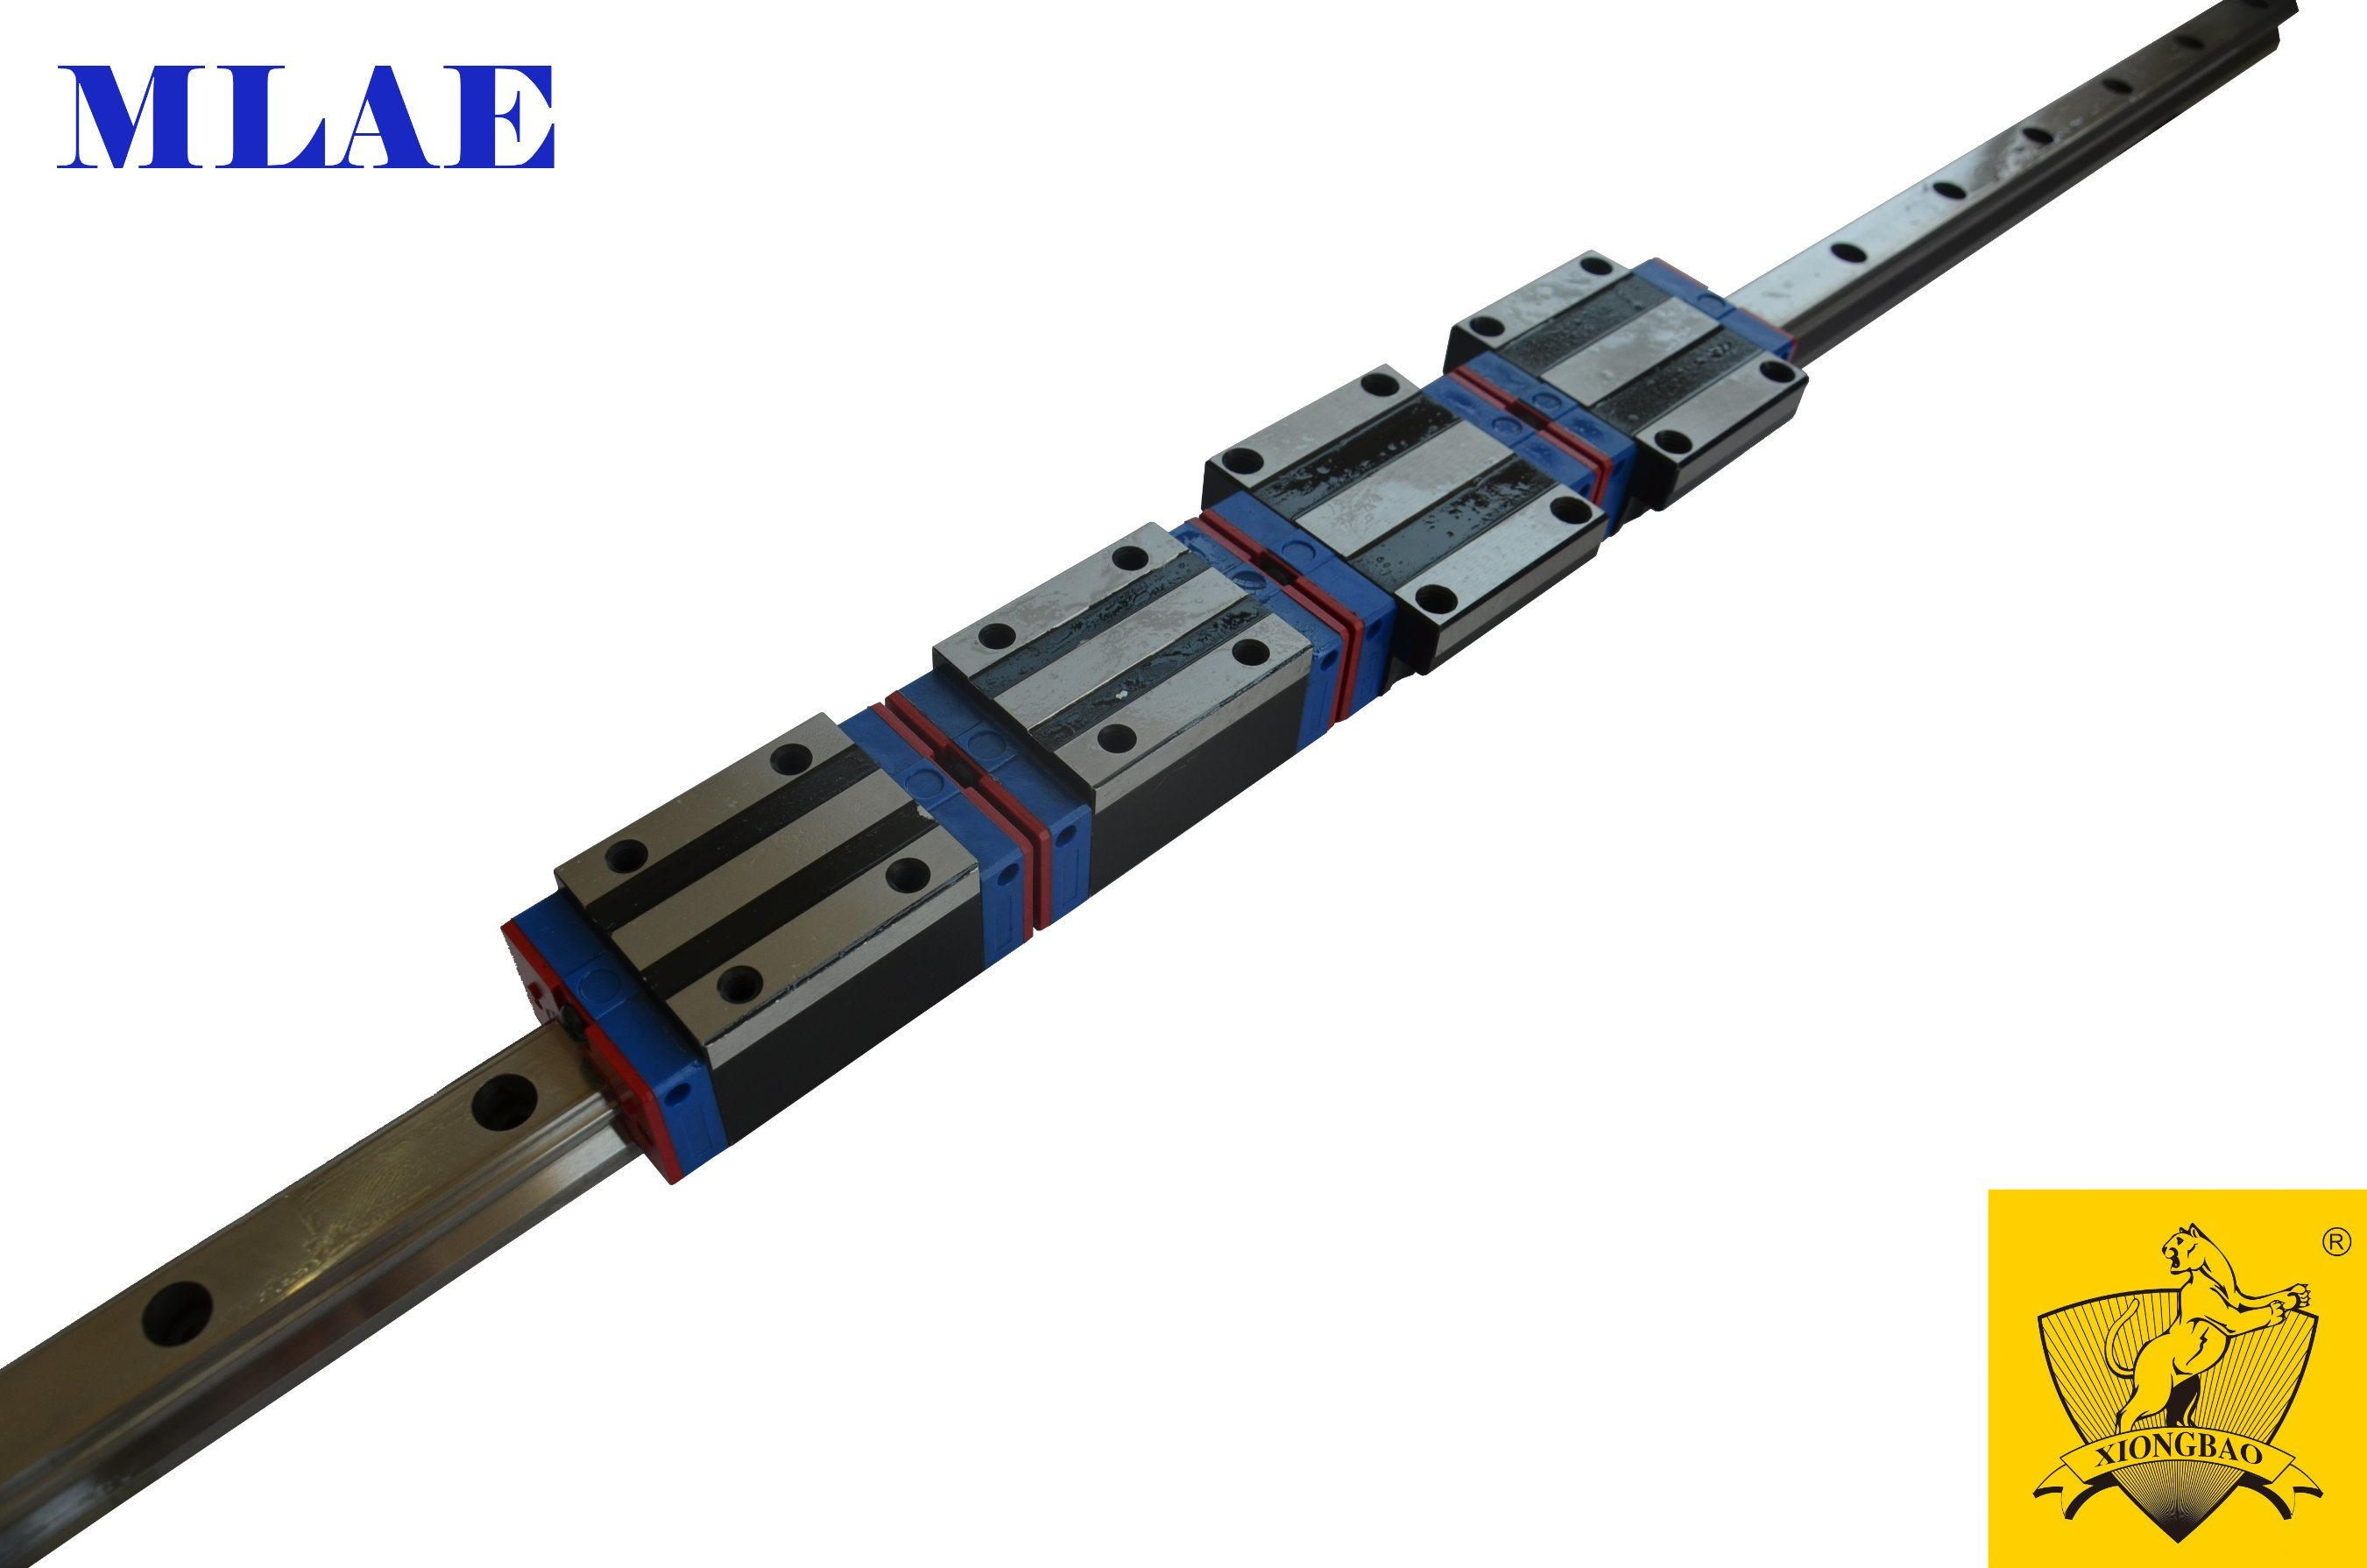 Mlae High Quality Precision Linear Guide for CNC Machinery